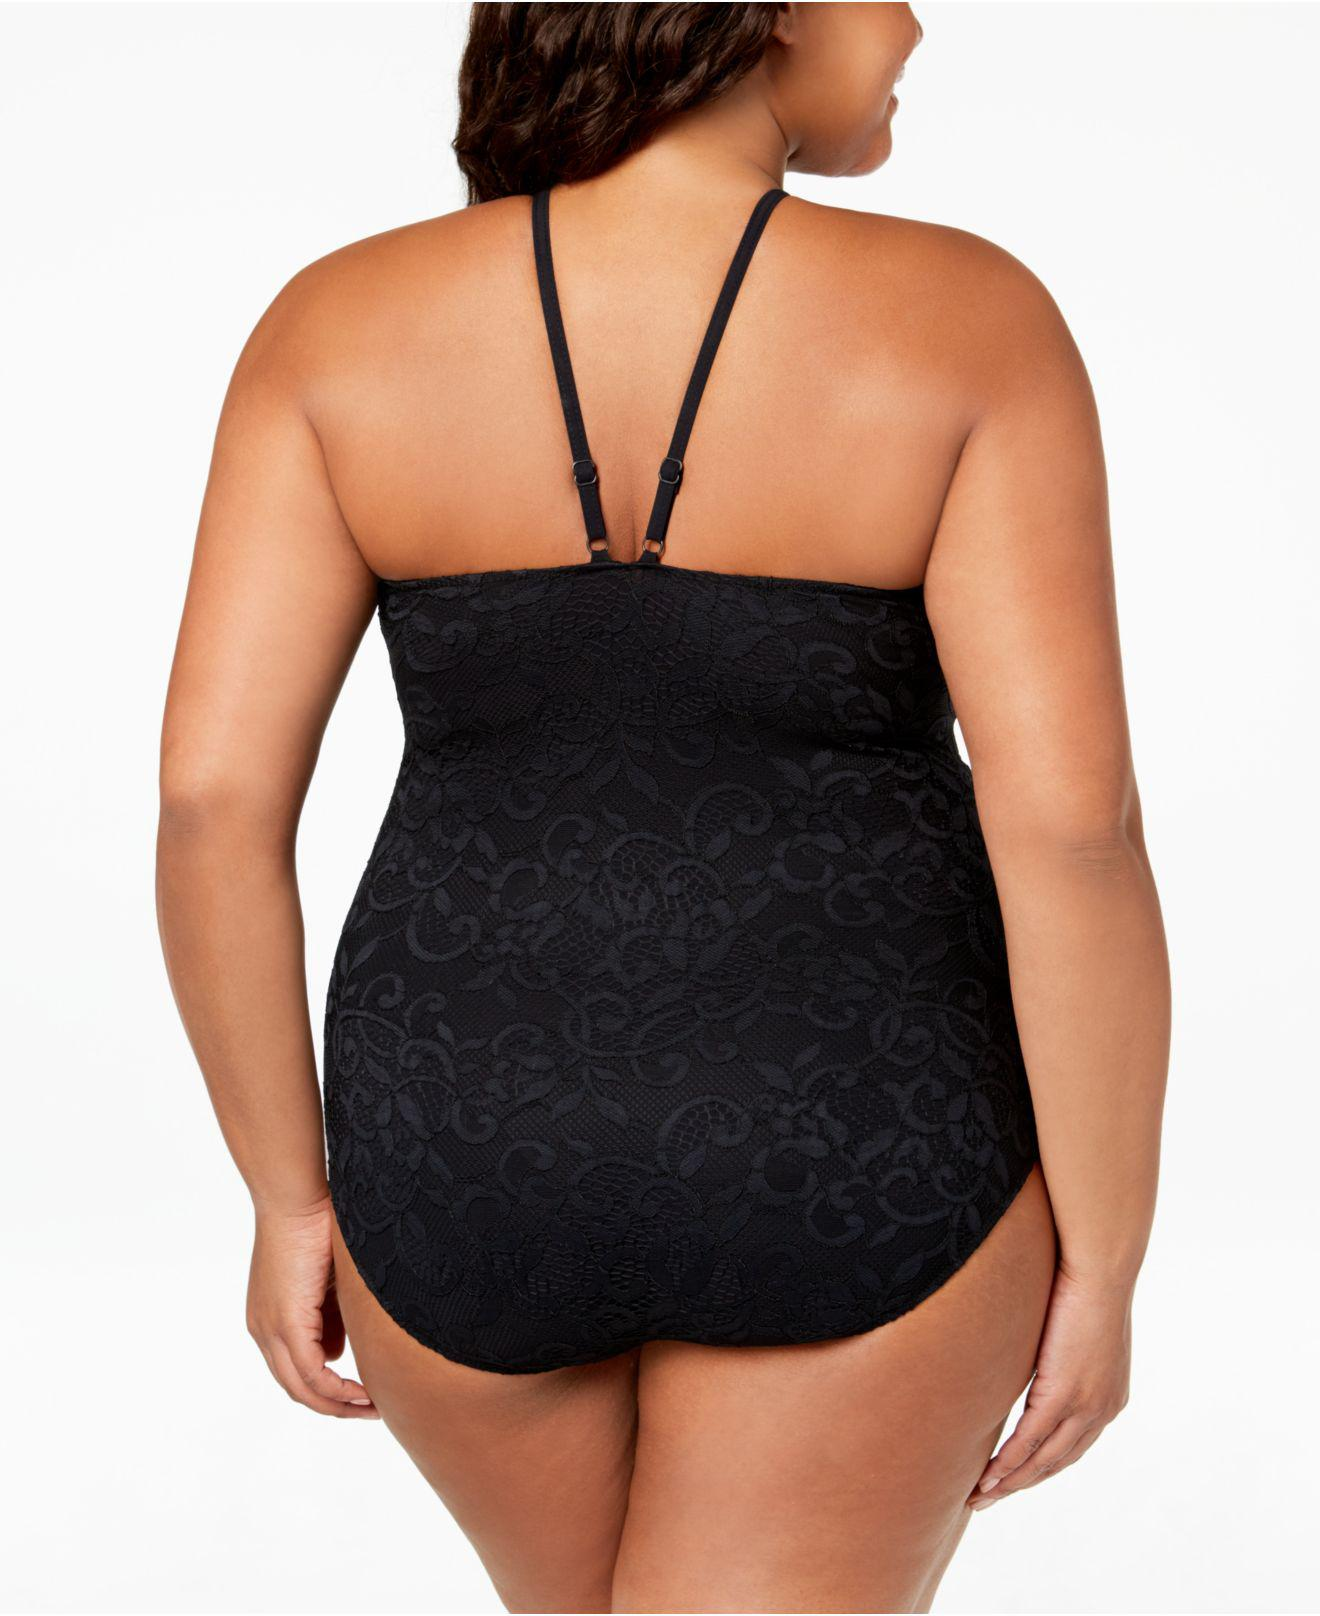 799ea1a535c8b Lyst - Gottex Profile By Gotex Plus Shamilar High-neck One Piece Swimsuit  in Black